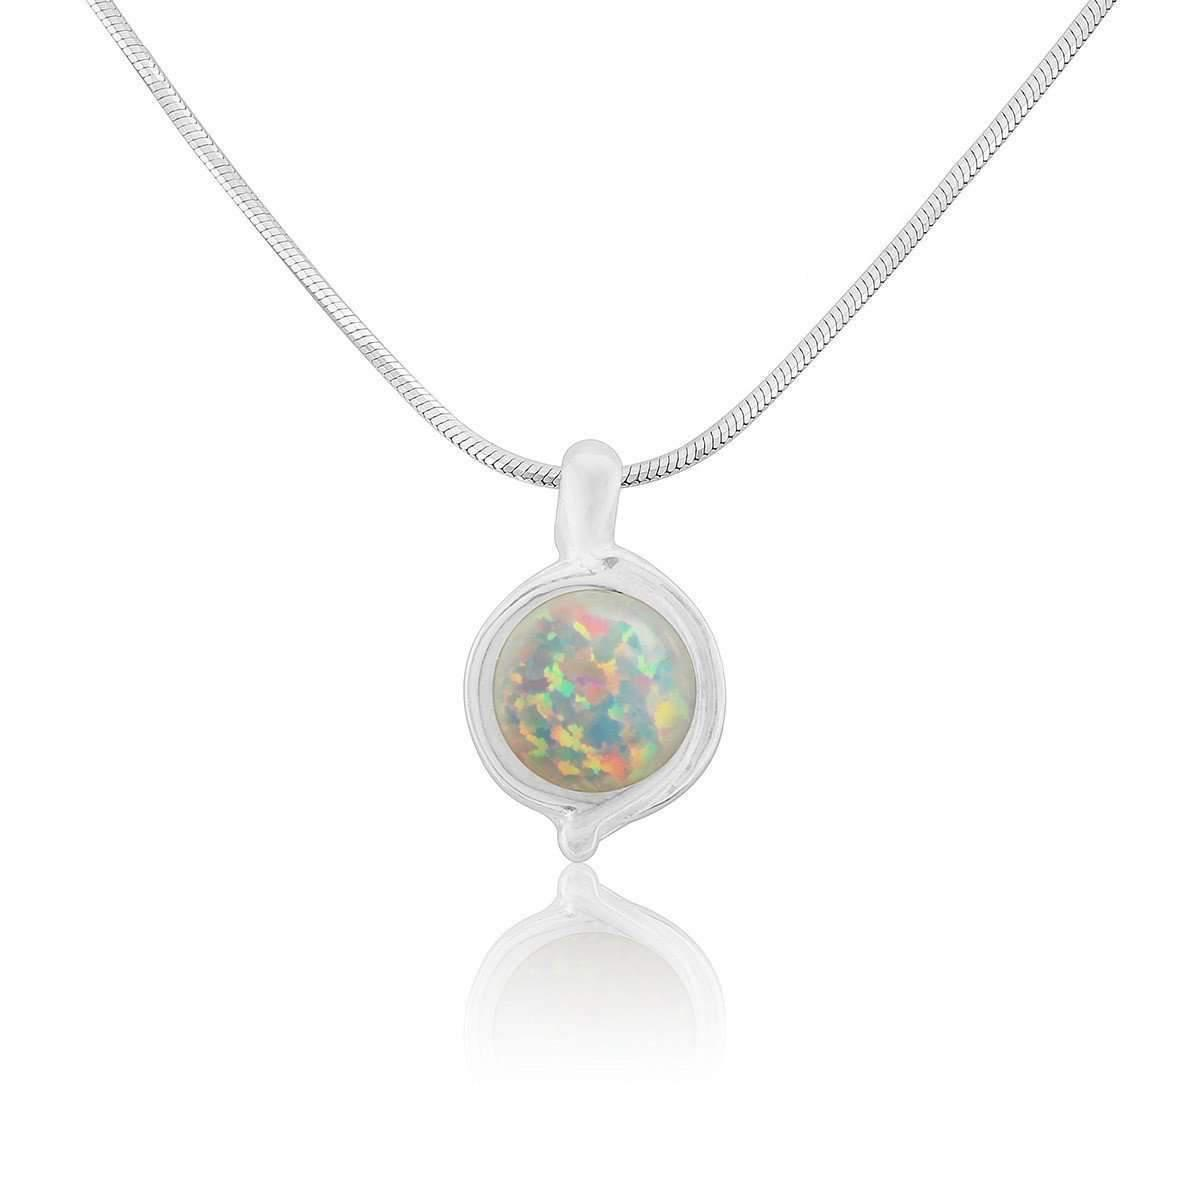 Lavan Silver Large White Opal Pendant - 16 Inches